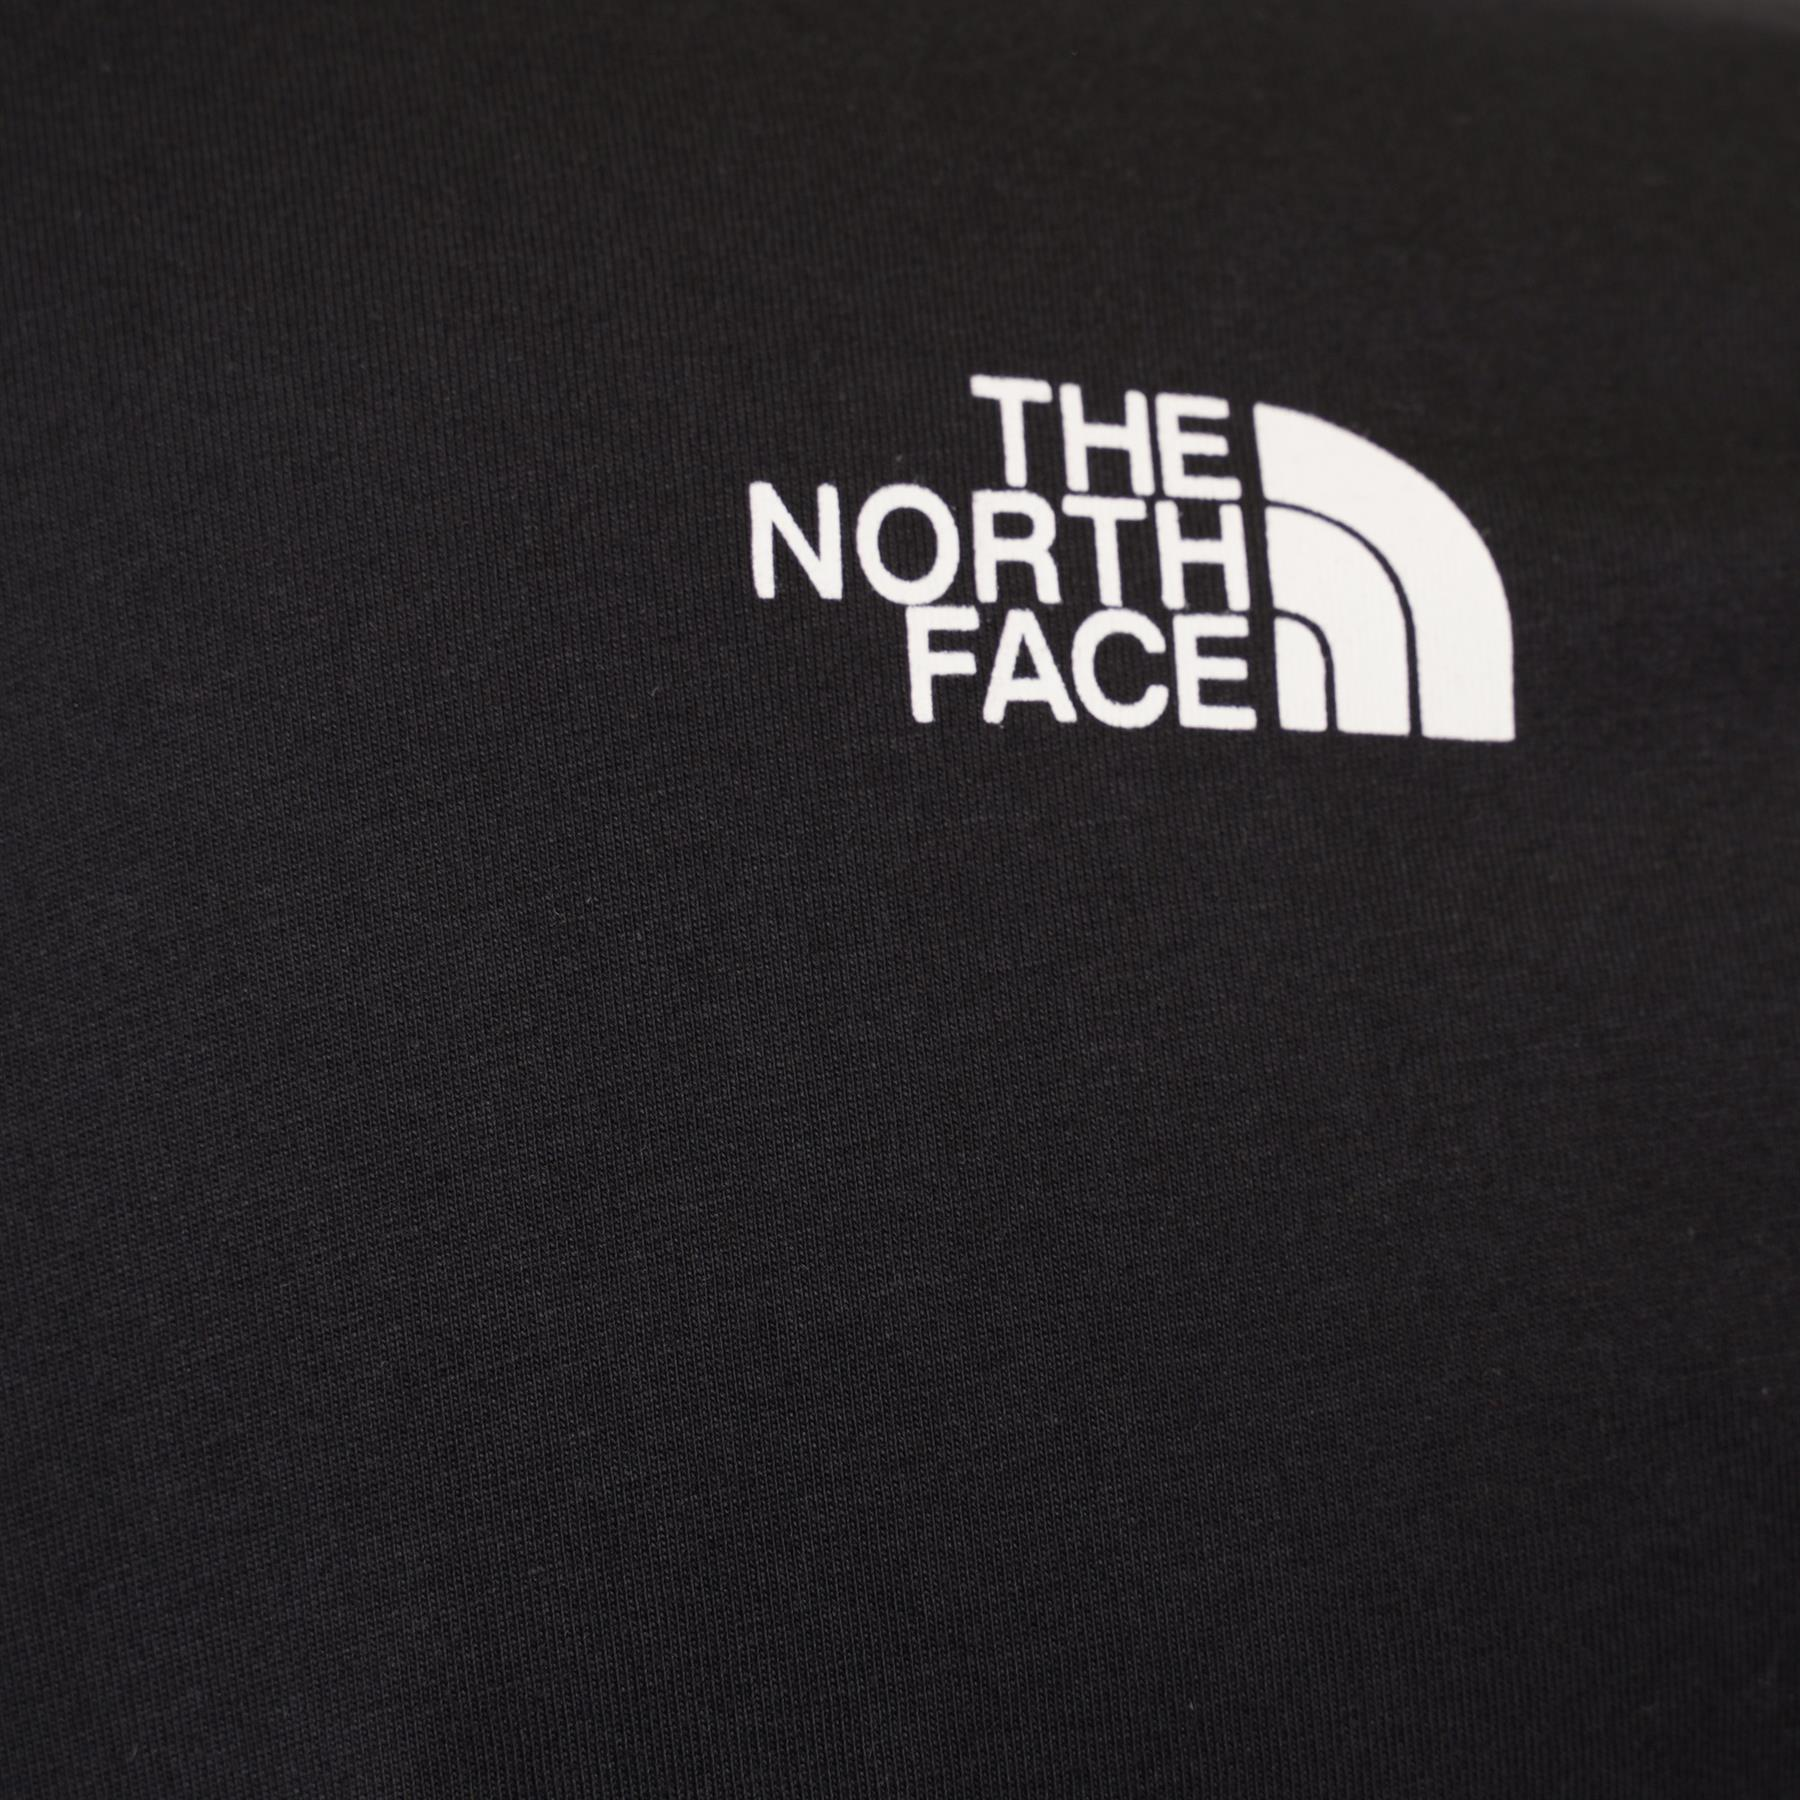 The North Face Simple Dome Cotton Logo Sports T-Shirt Top - Black